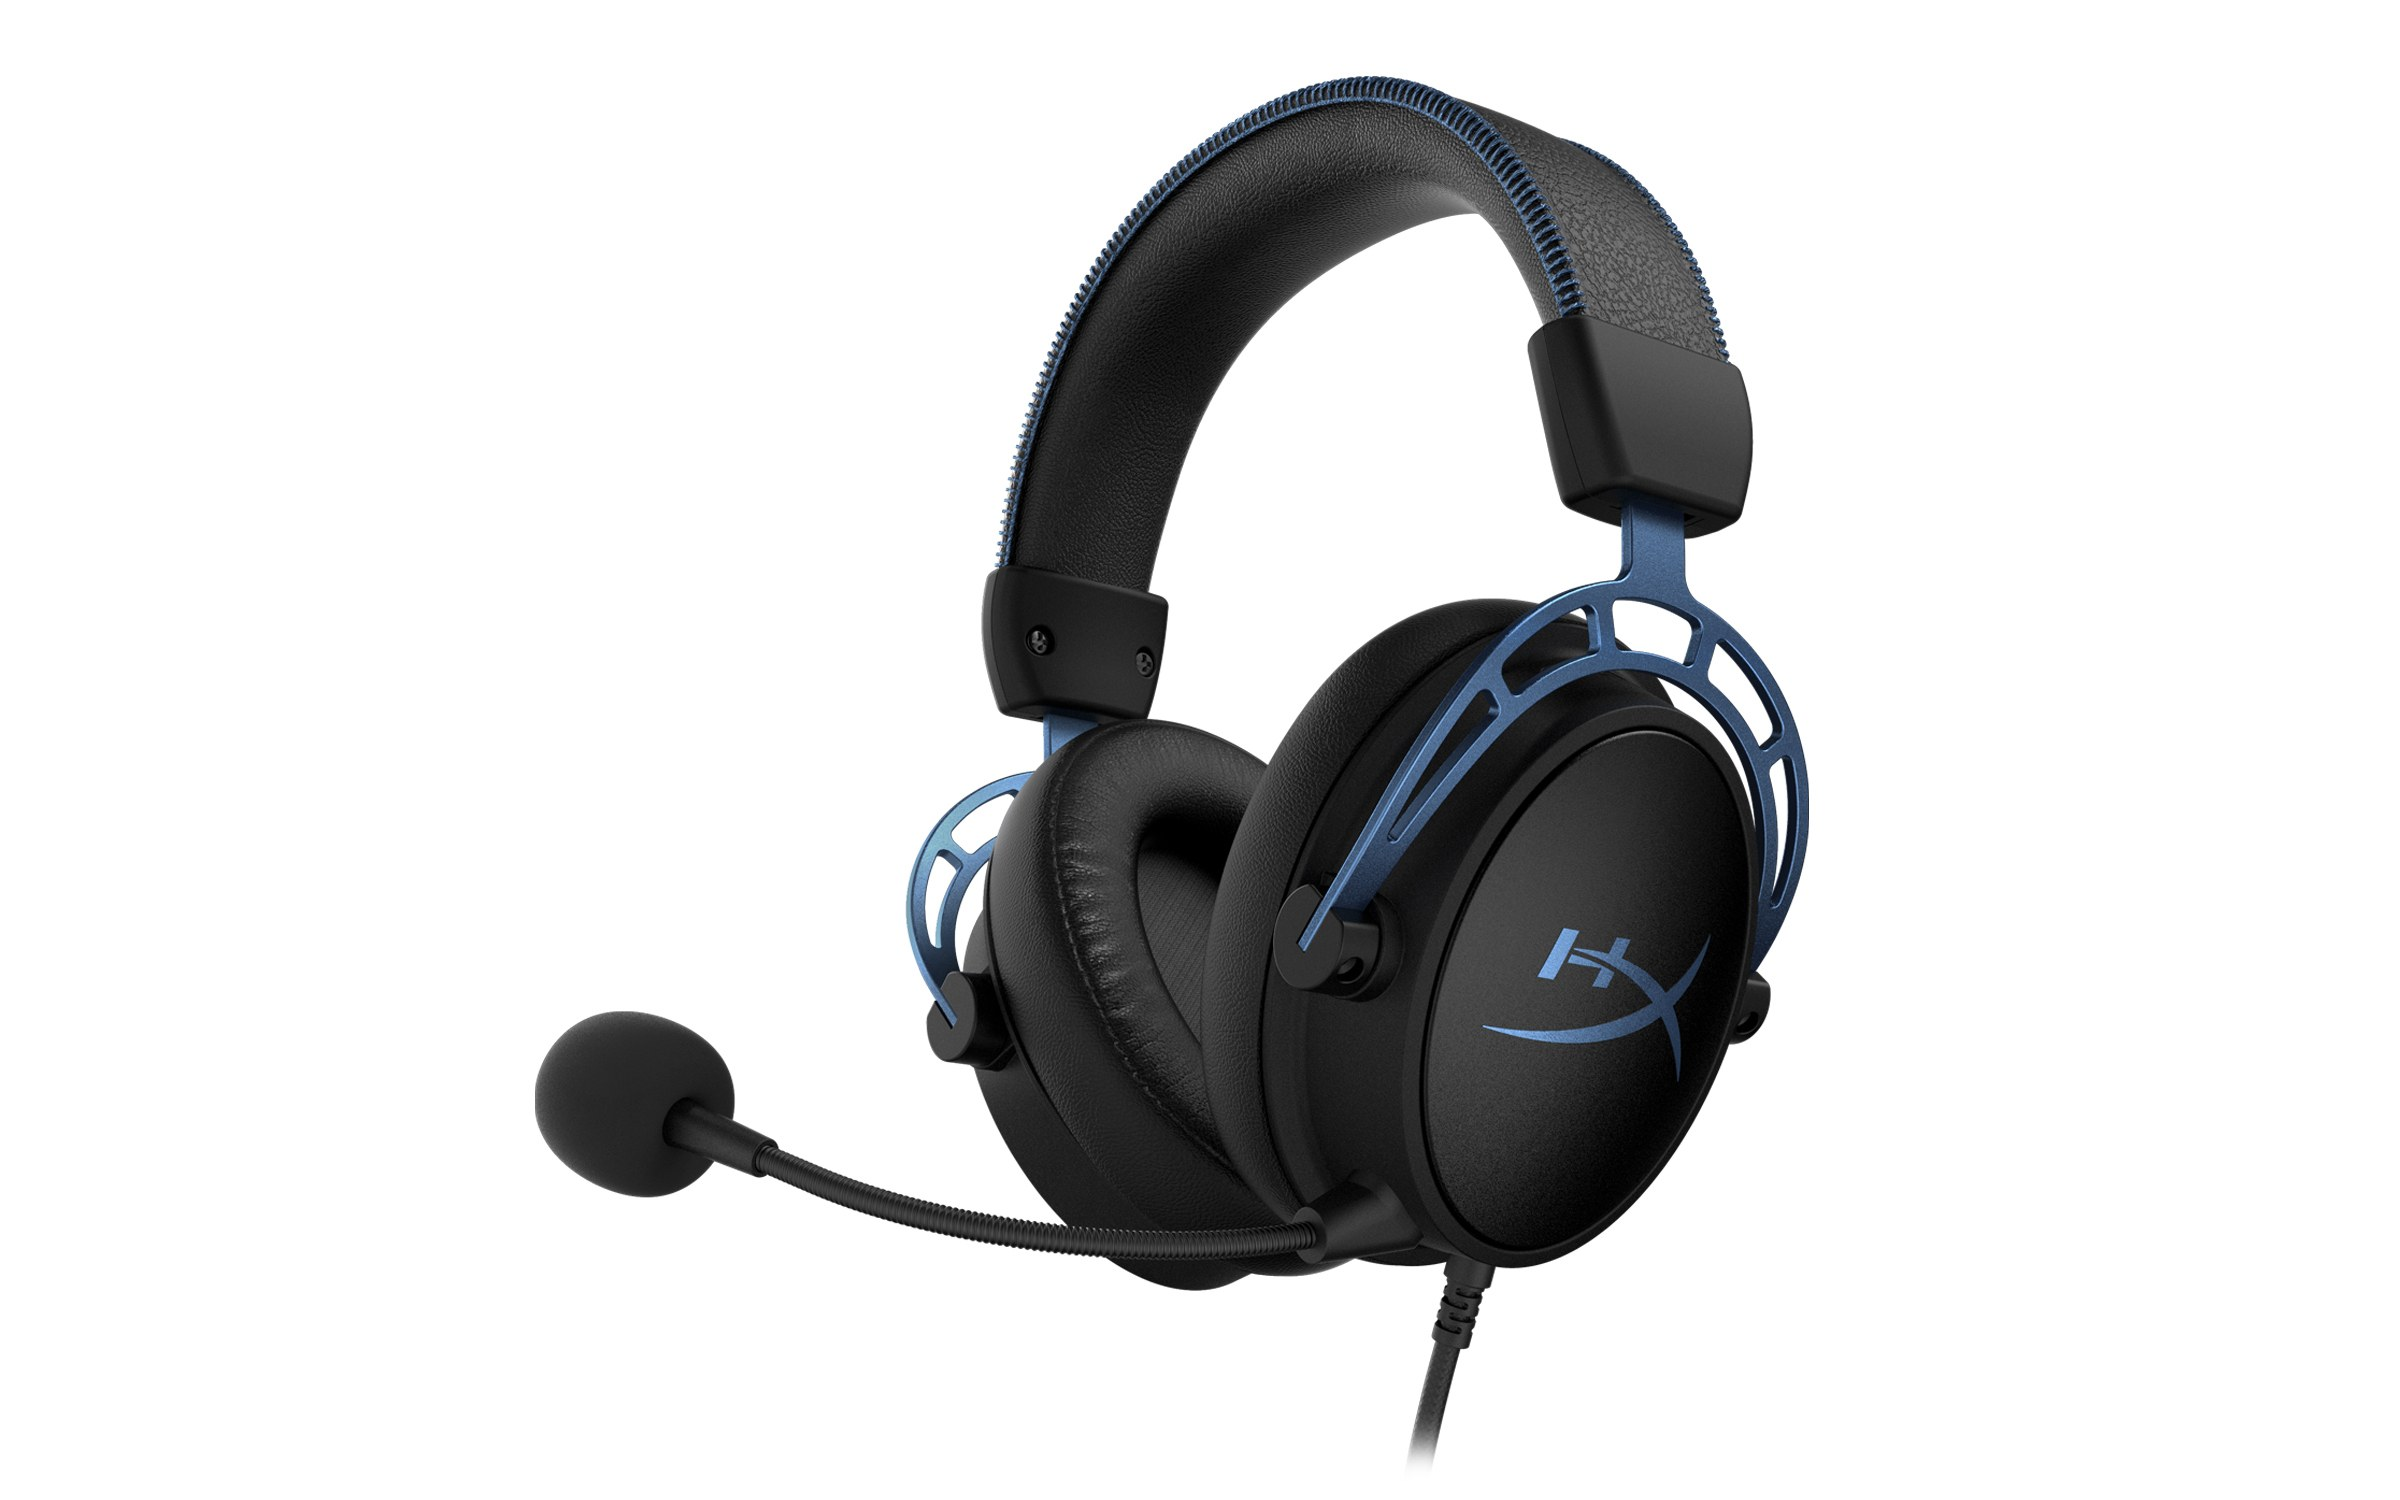 The HyperX Cloud Alpha S adds new features to an already amazing headset